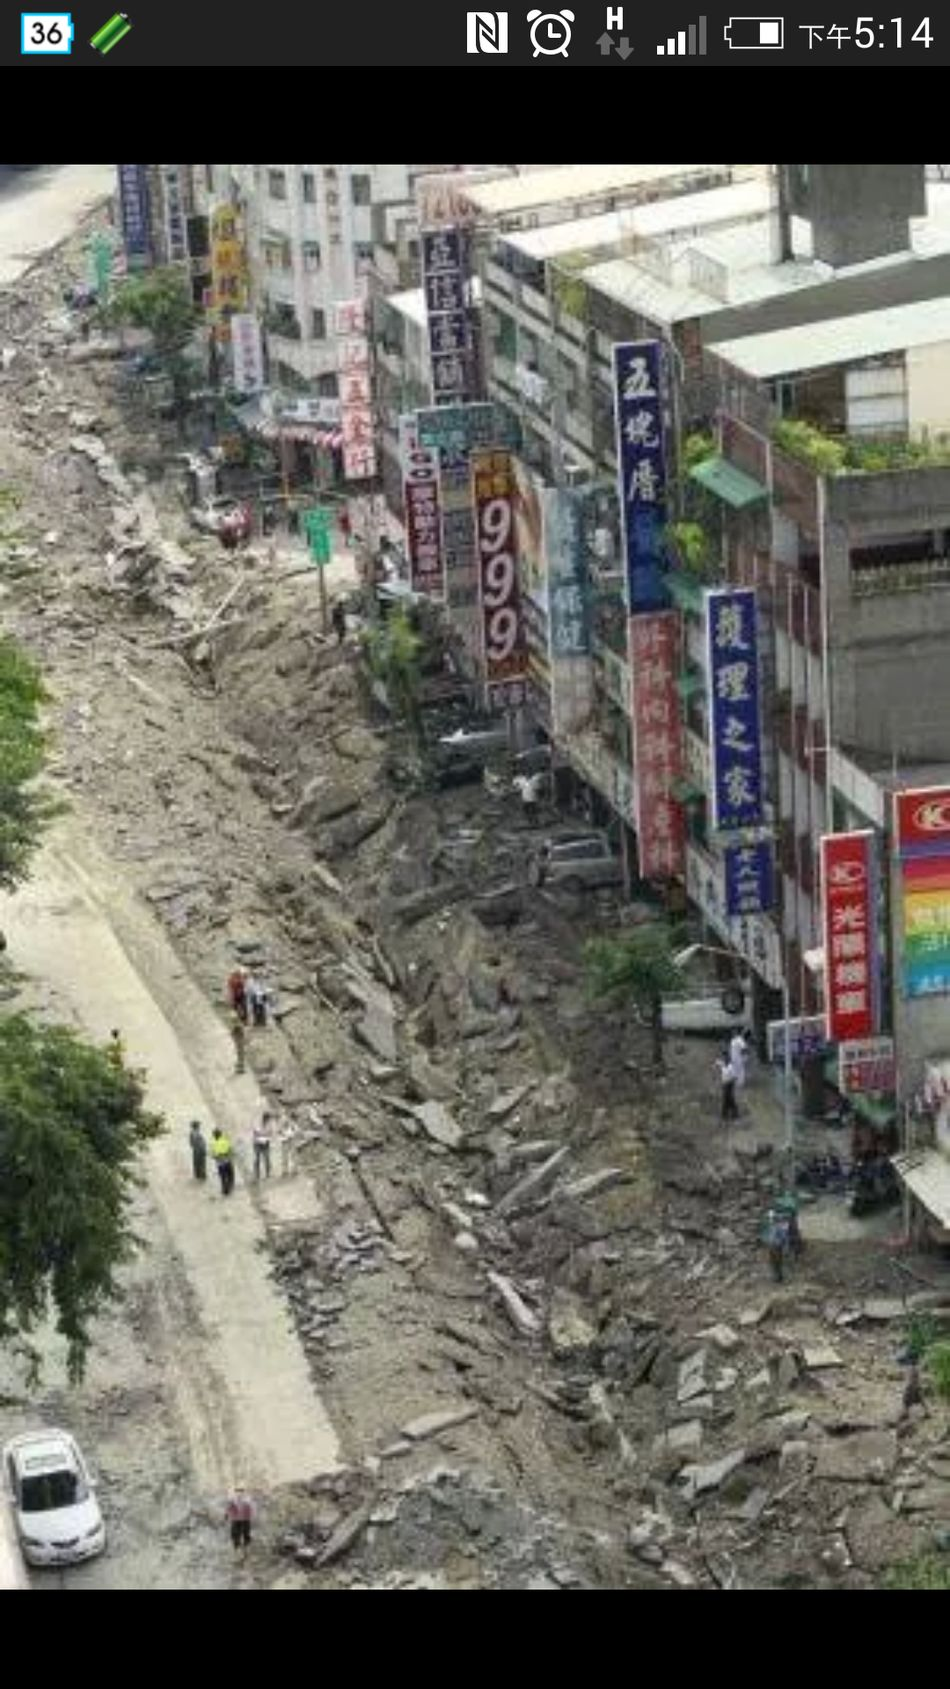 I'm lucky because I'm still alive and my family my friends,yesterday it's a terrible night for kaohsiung .pray for kaohsiung pray for Taiwan Terrible Day Pray